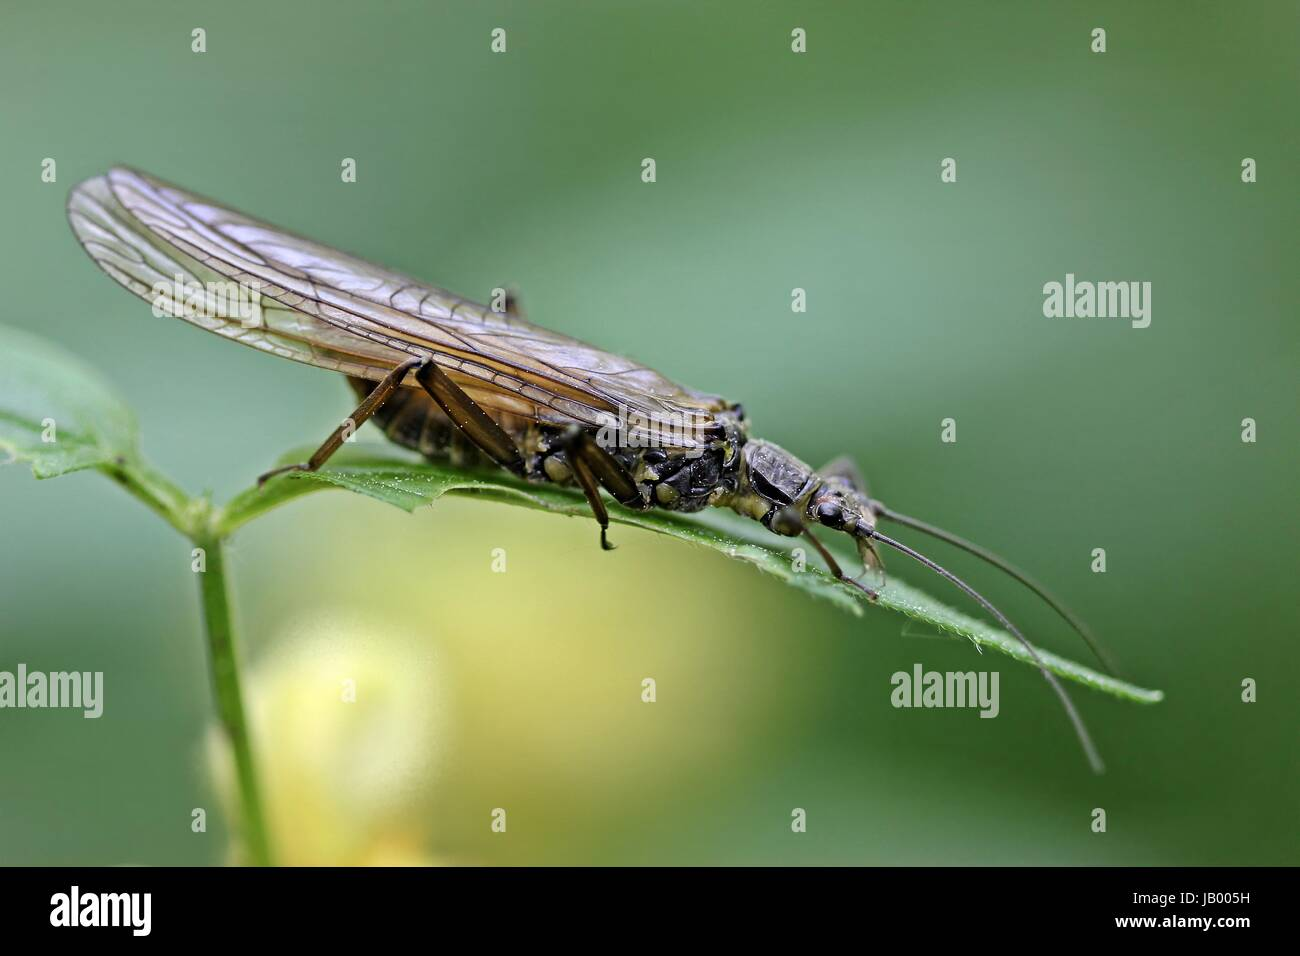 steinfliege plecoptera - Stock Image